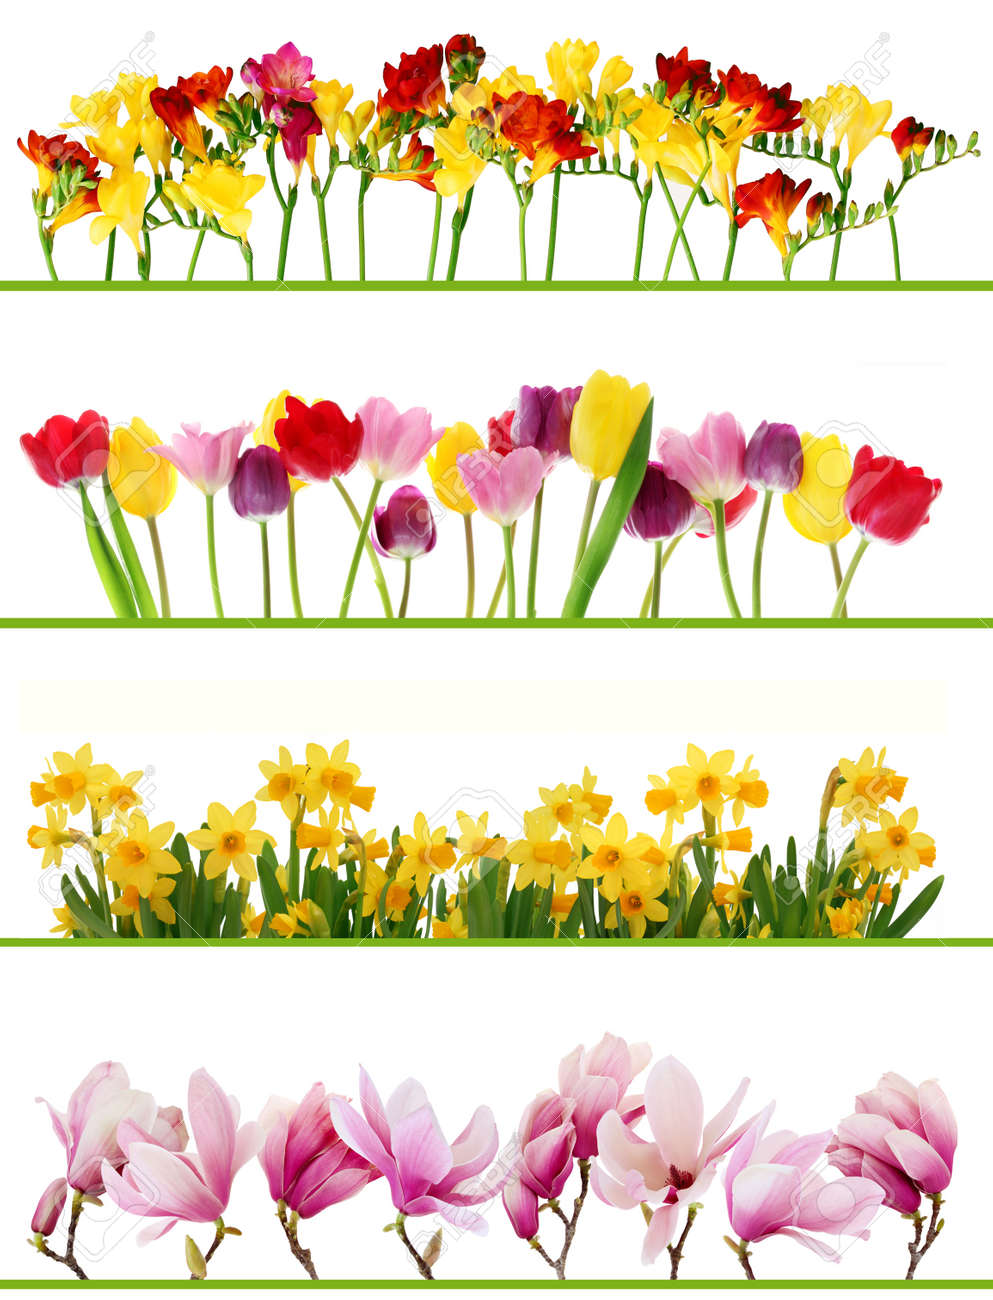 Colorful Fresh Spring Flowers Borders On White Background Tulips